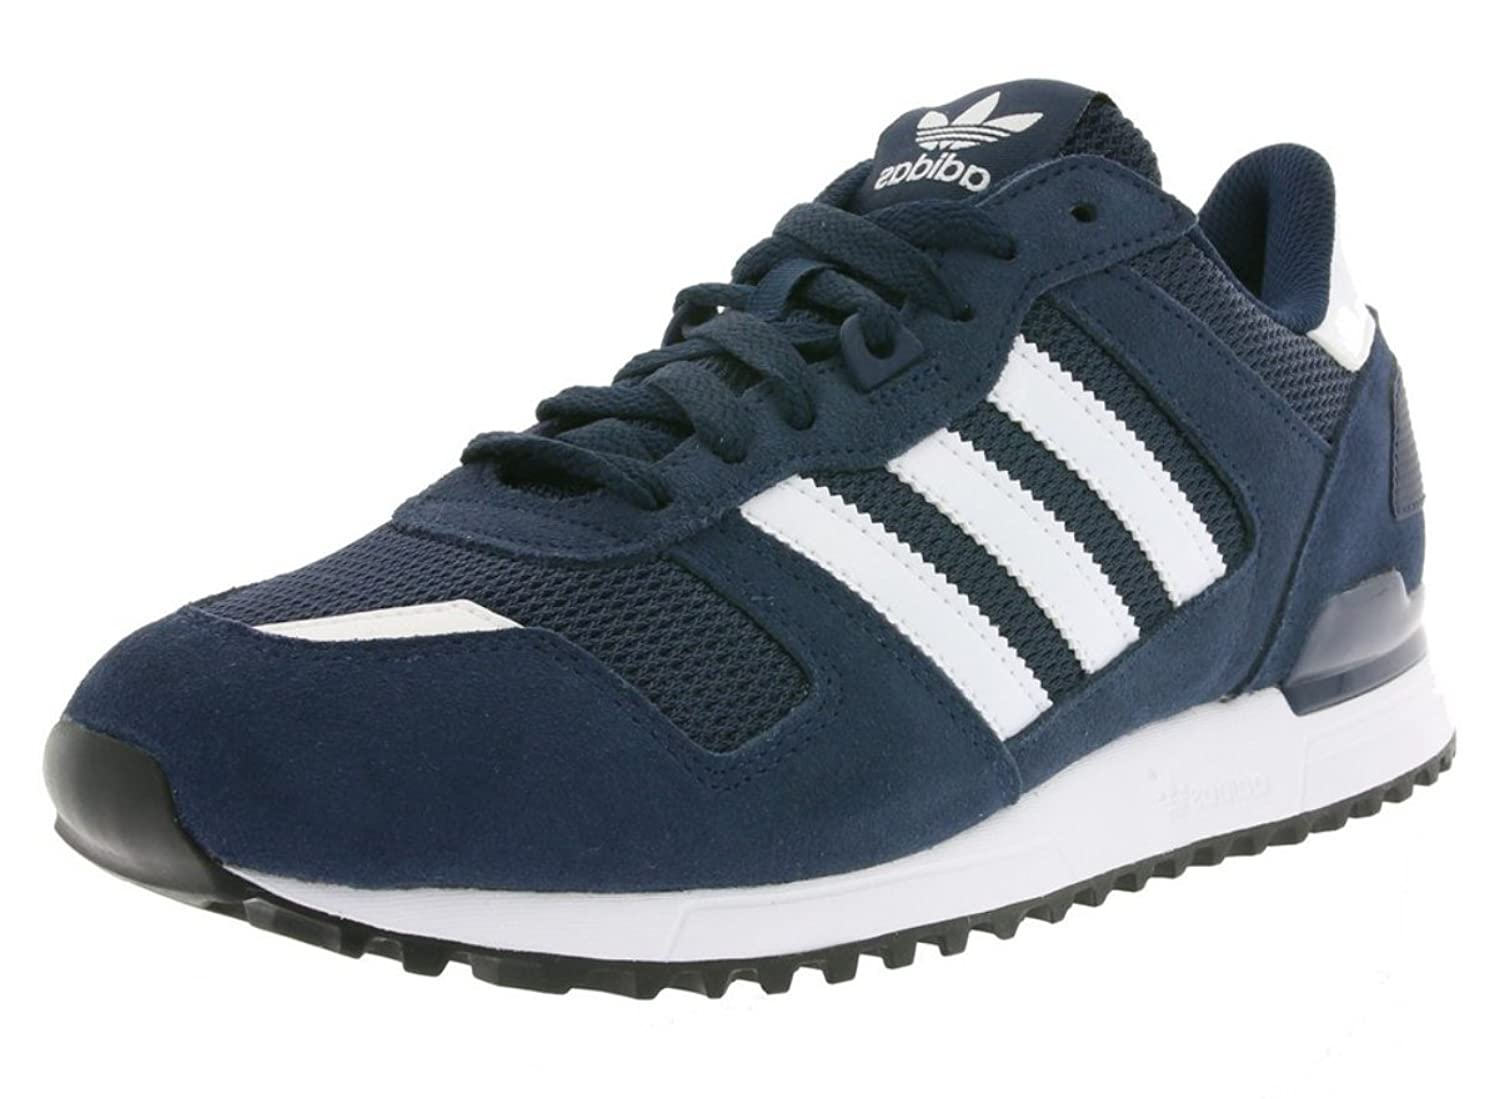 d2167c9d156bc ... promo code for 70off adidas zx700 zx 700 originals mens running shoe  navy white s76176 d411b